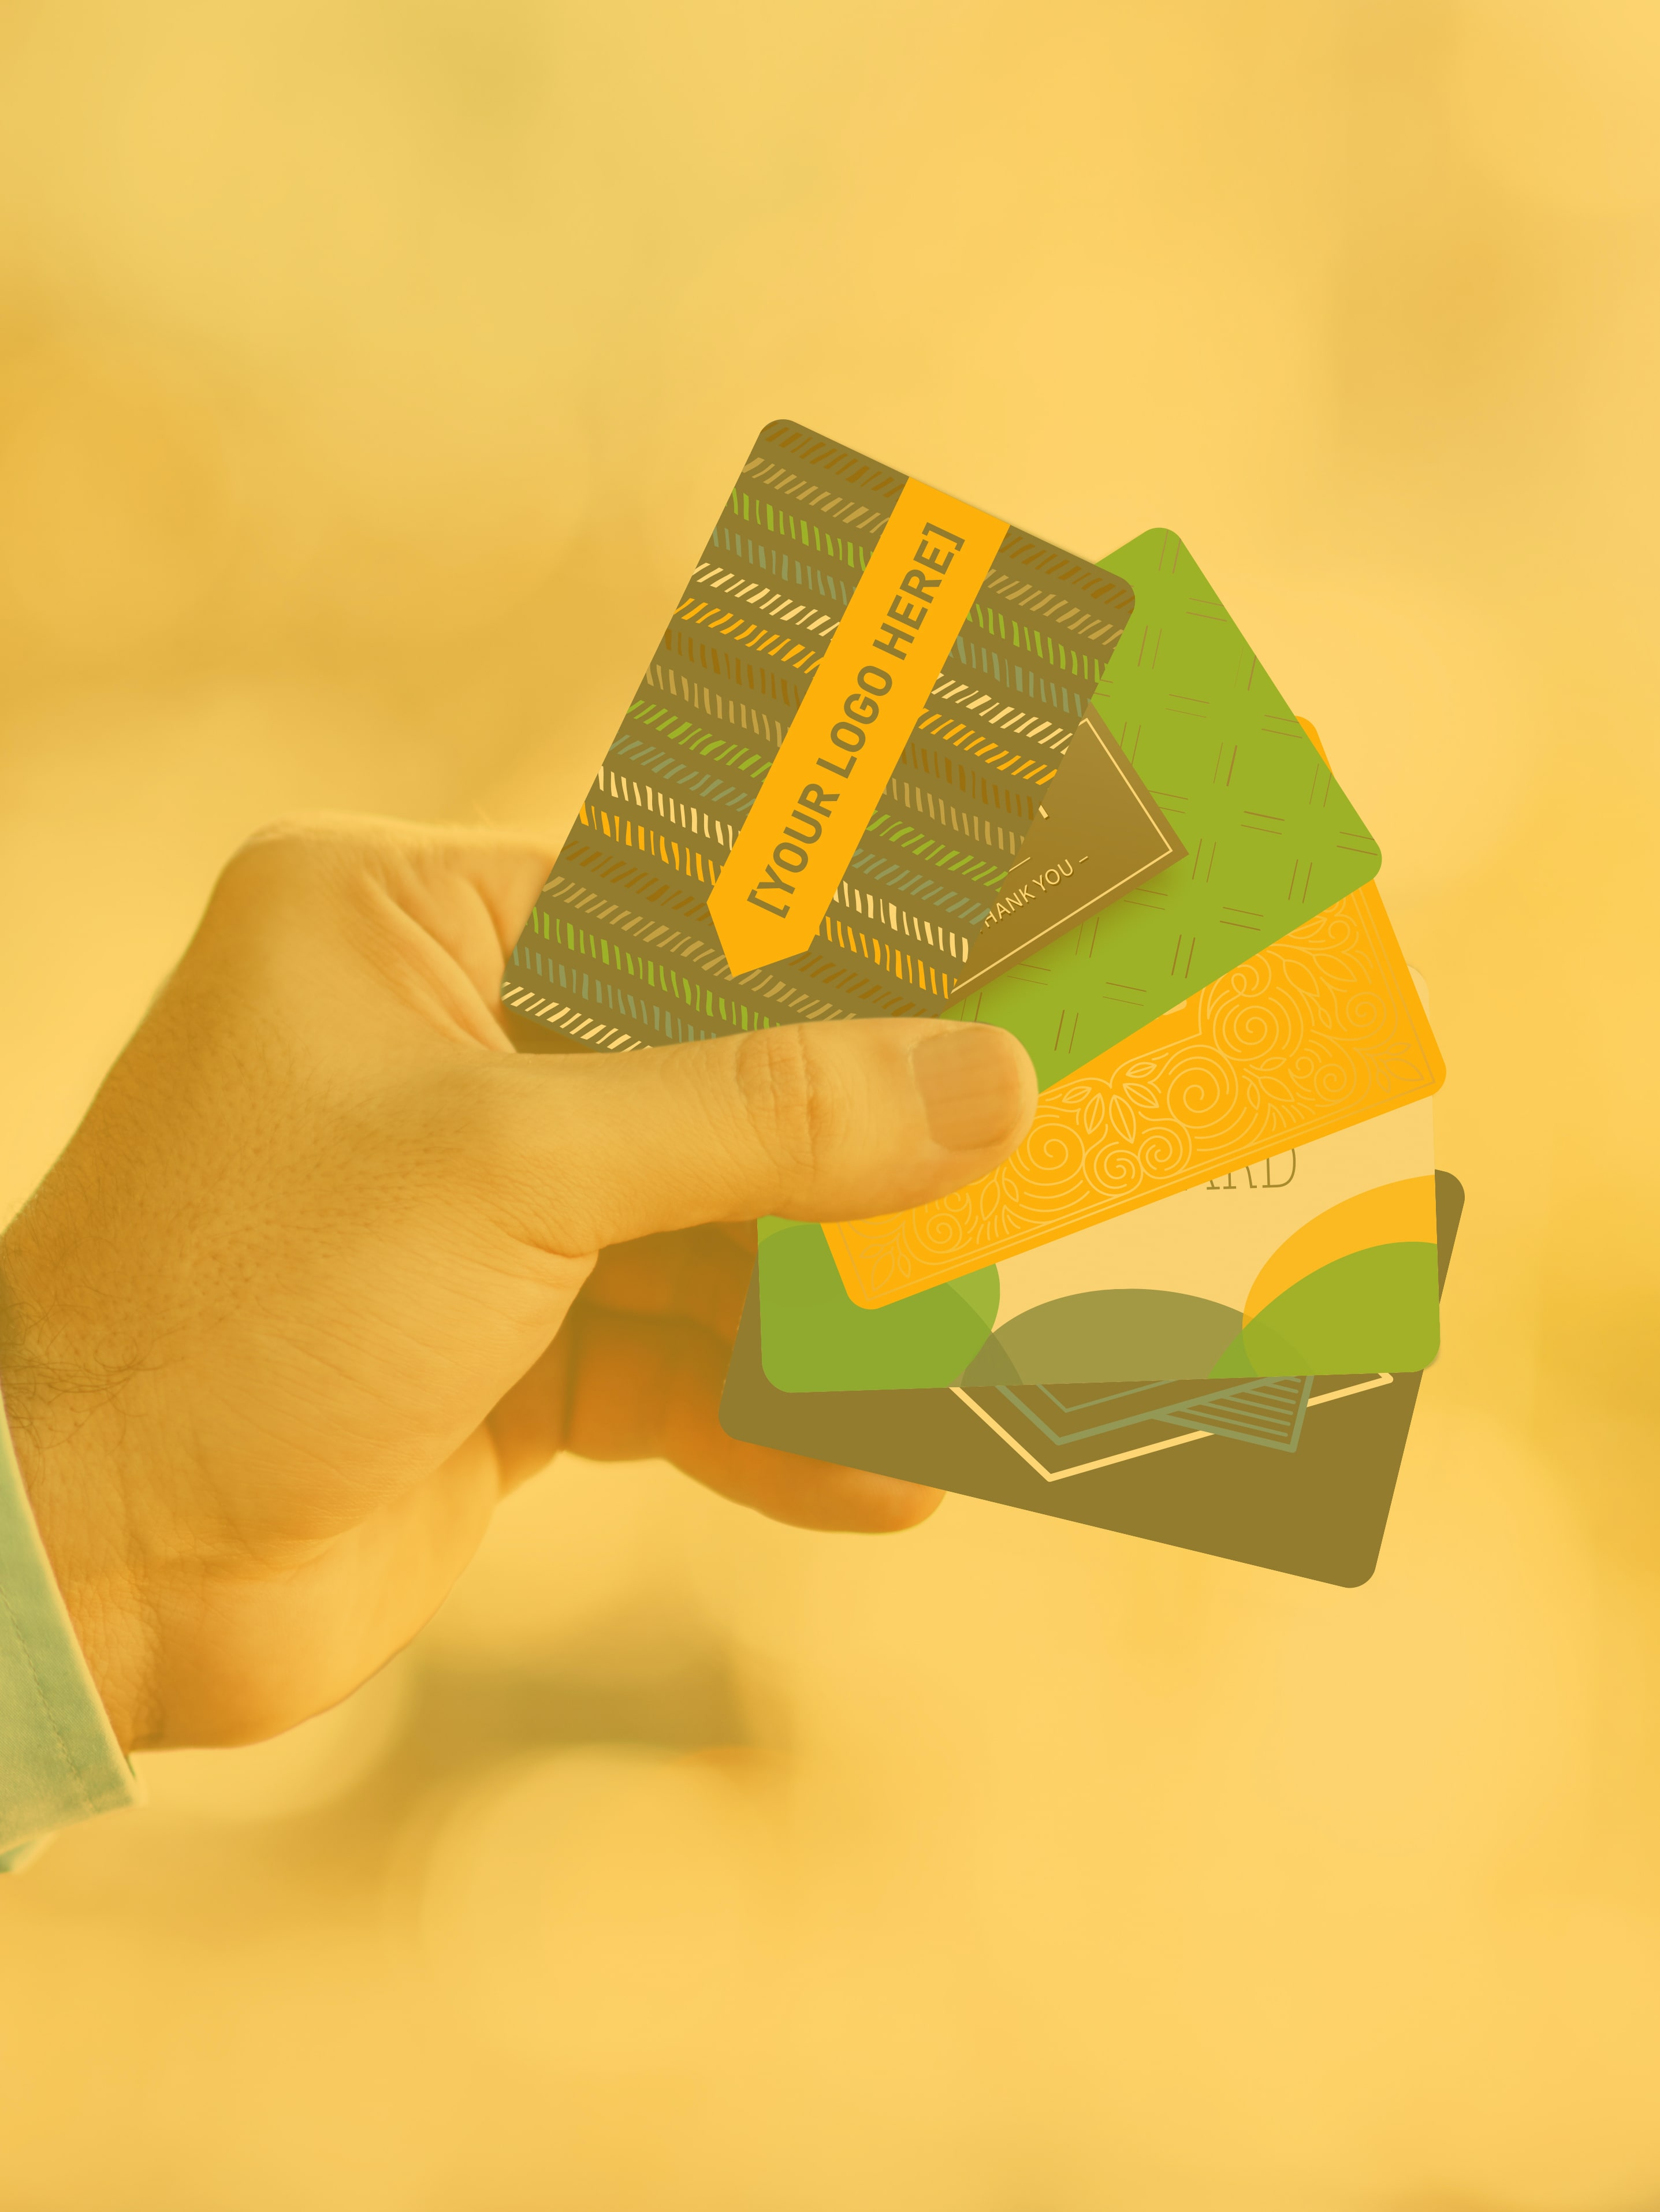 A man's left hand fans out five generic gift cards that represent custom designs for your business' gift card program.